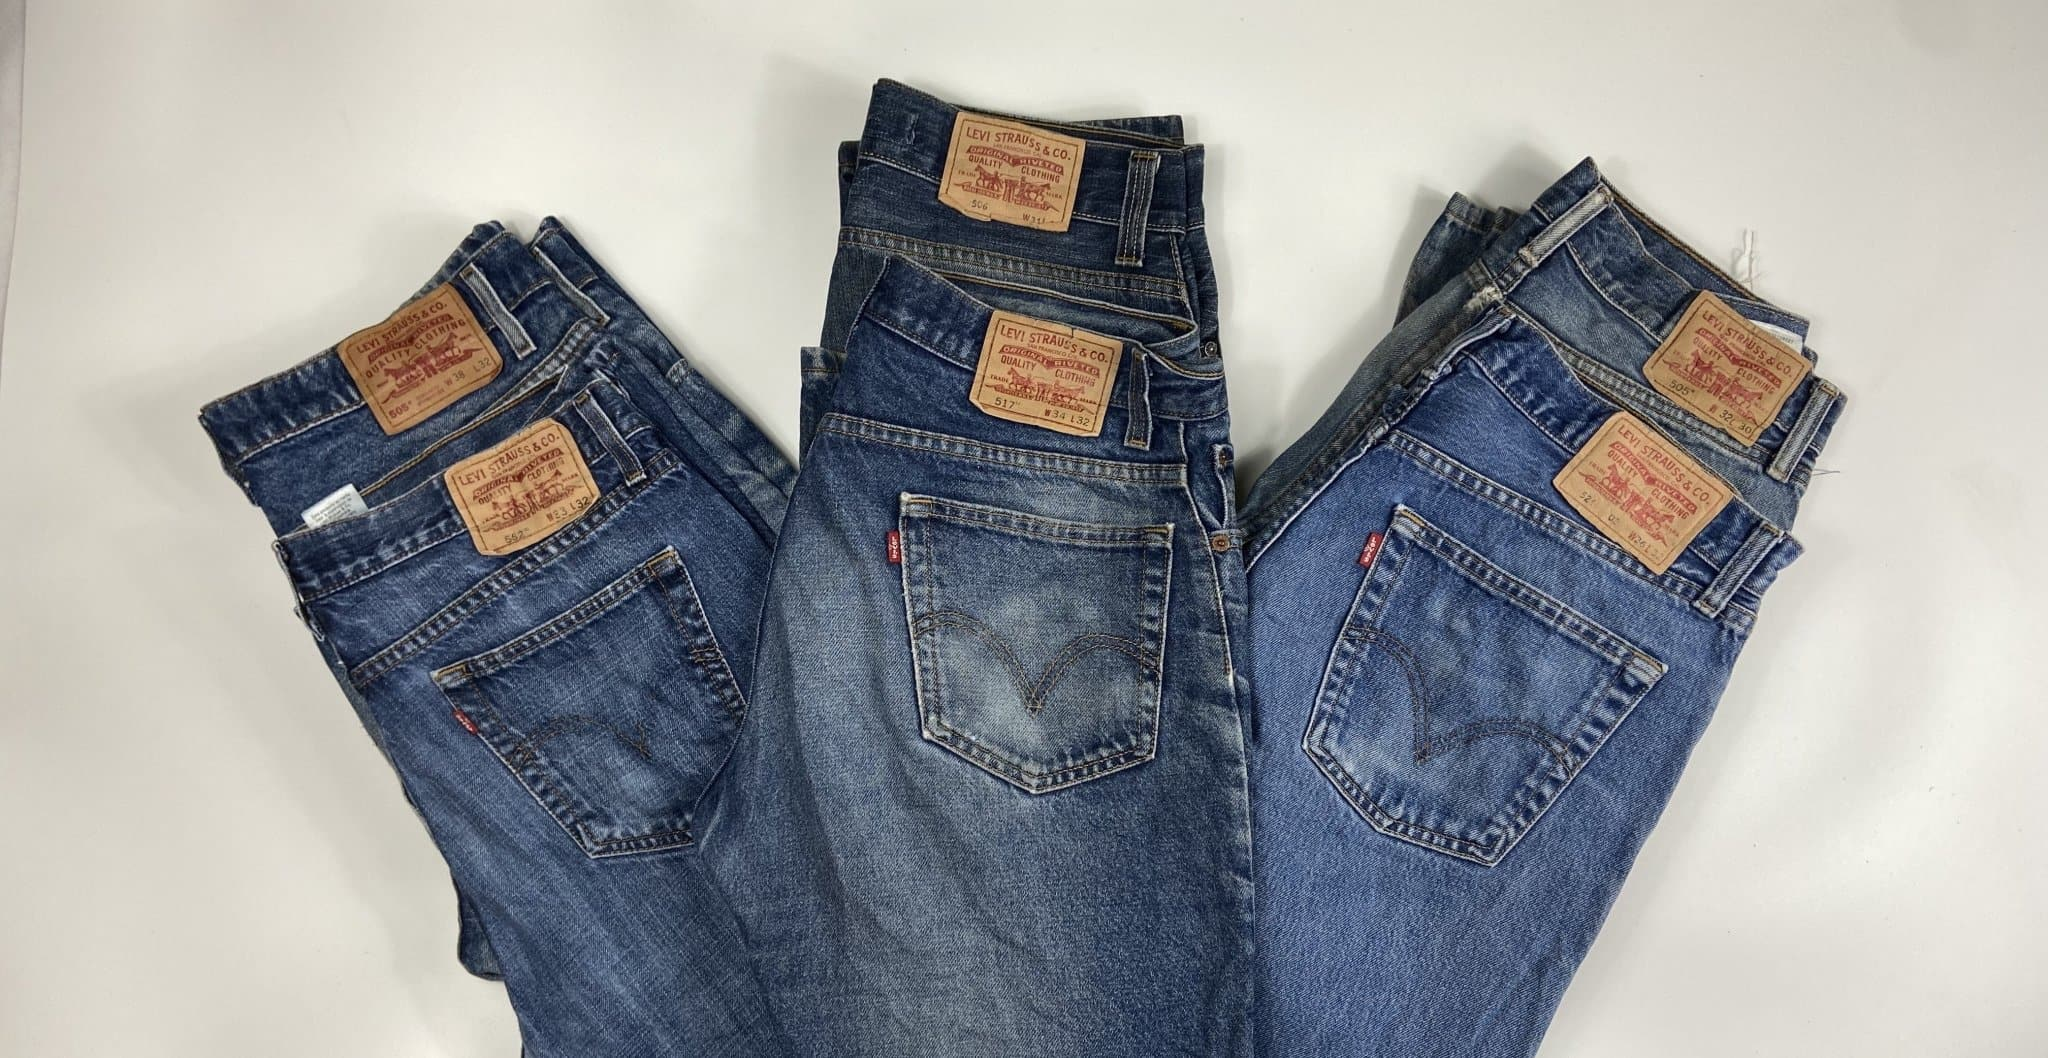 Vintage Levi's Classic Blue Zip Fly Jeans W38 L30 (BE4) - Discounted Deals UK